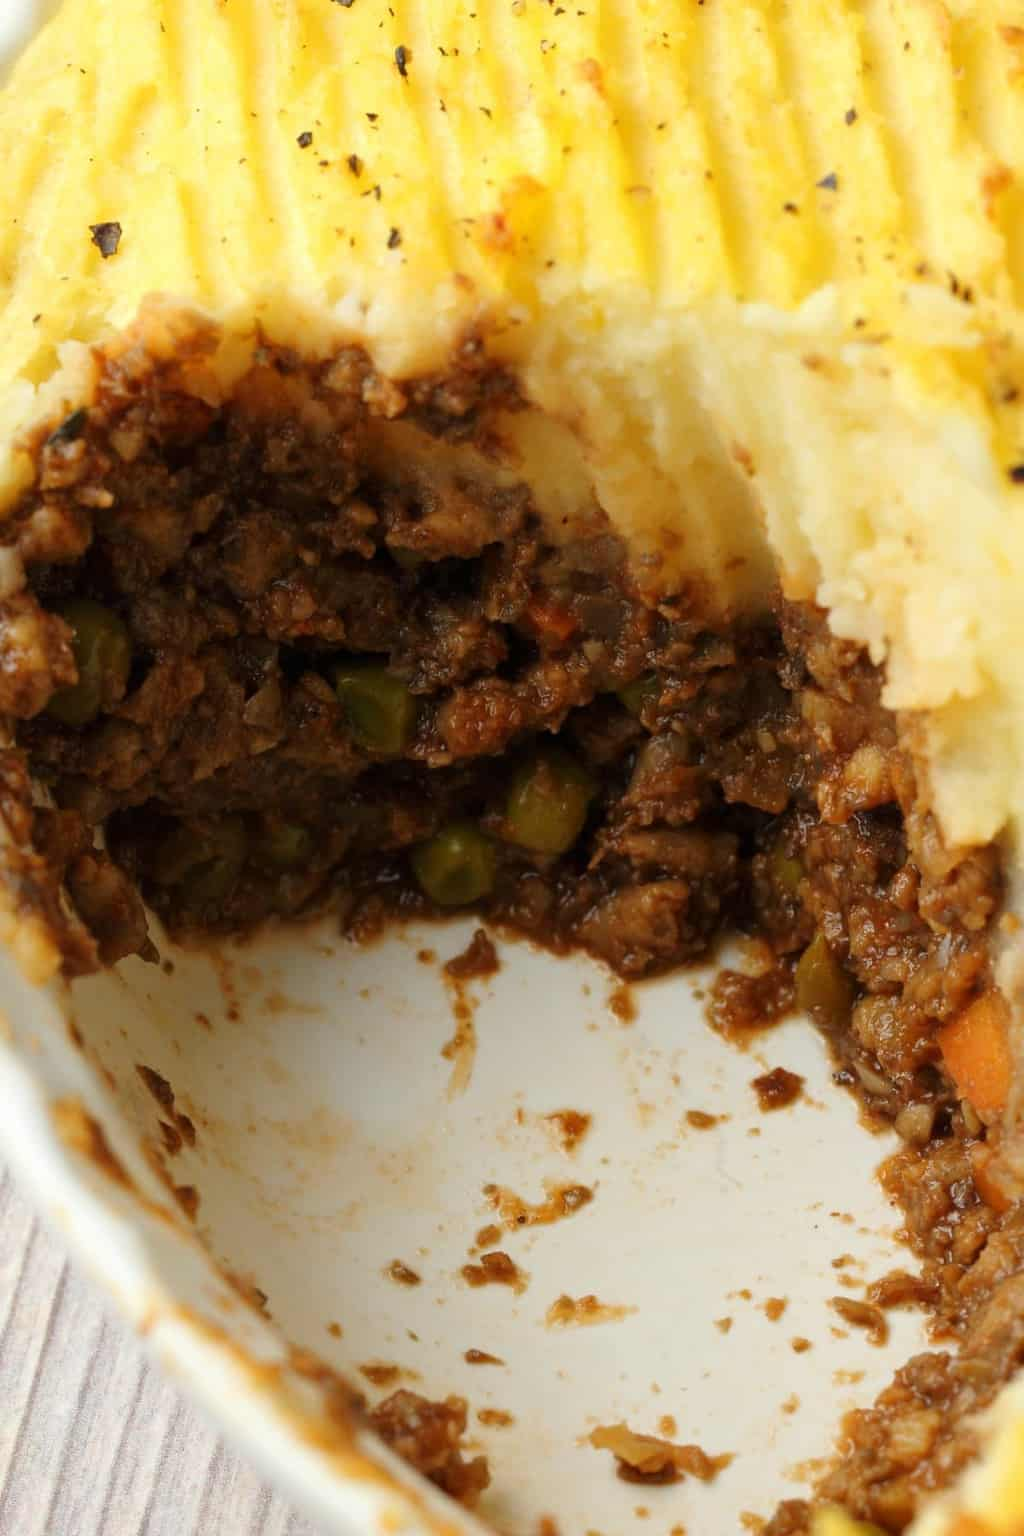 Vegan Shepherd's Pie in a white pie dish, one slice removed to show the layers.